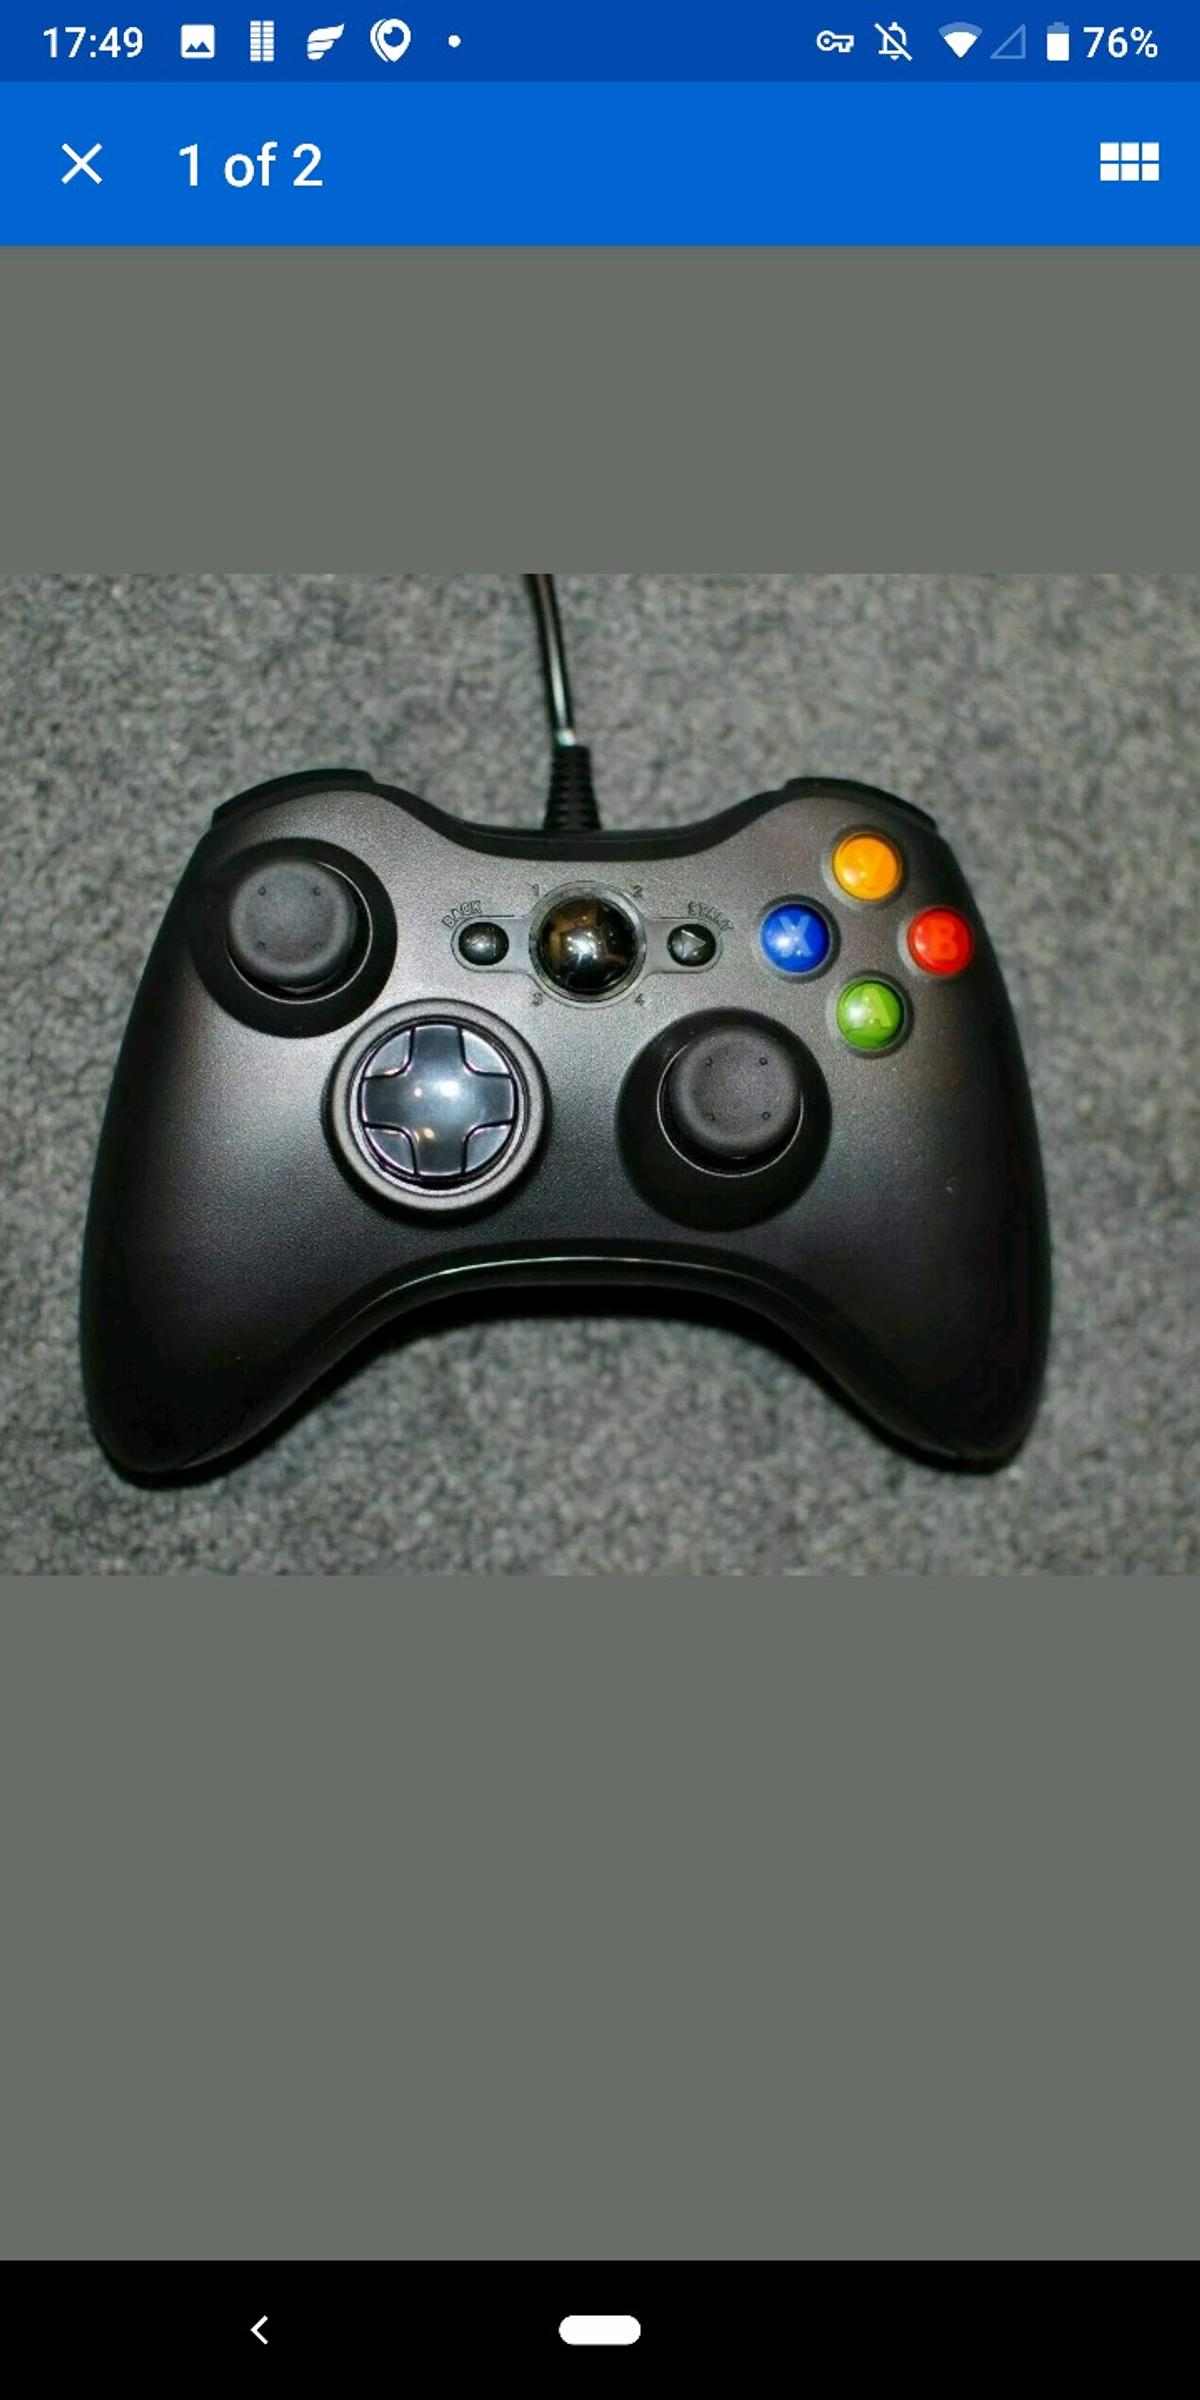 Xbox 360 Style Controller, wired USB